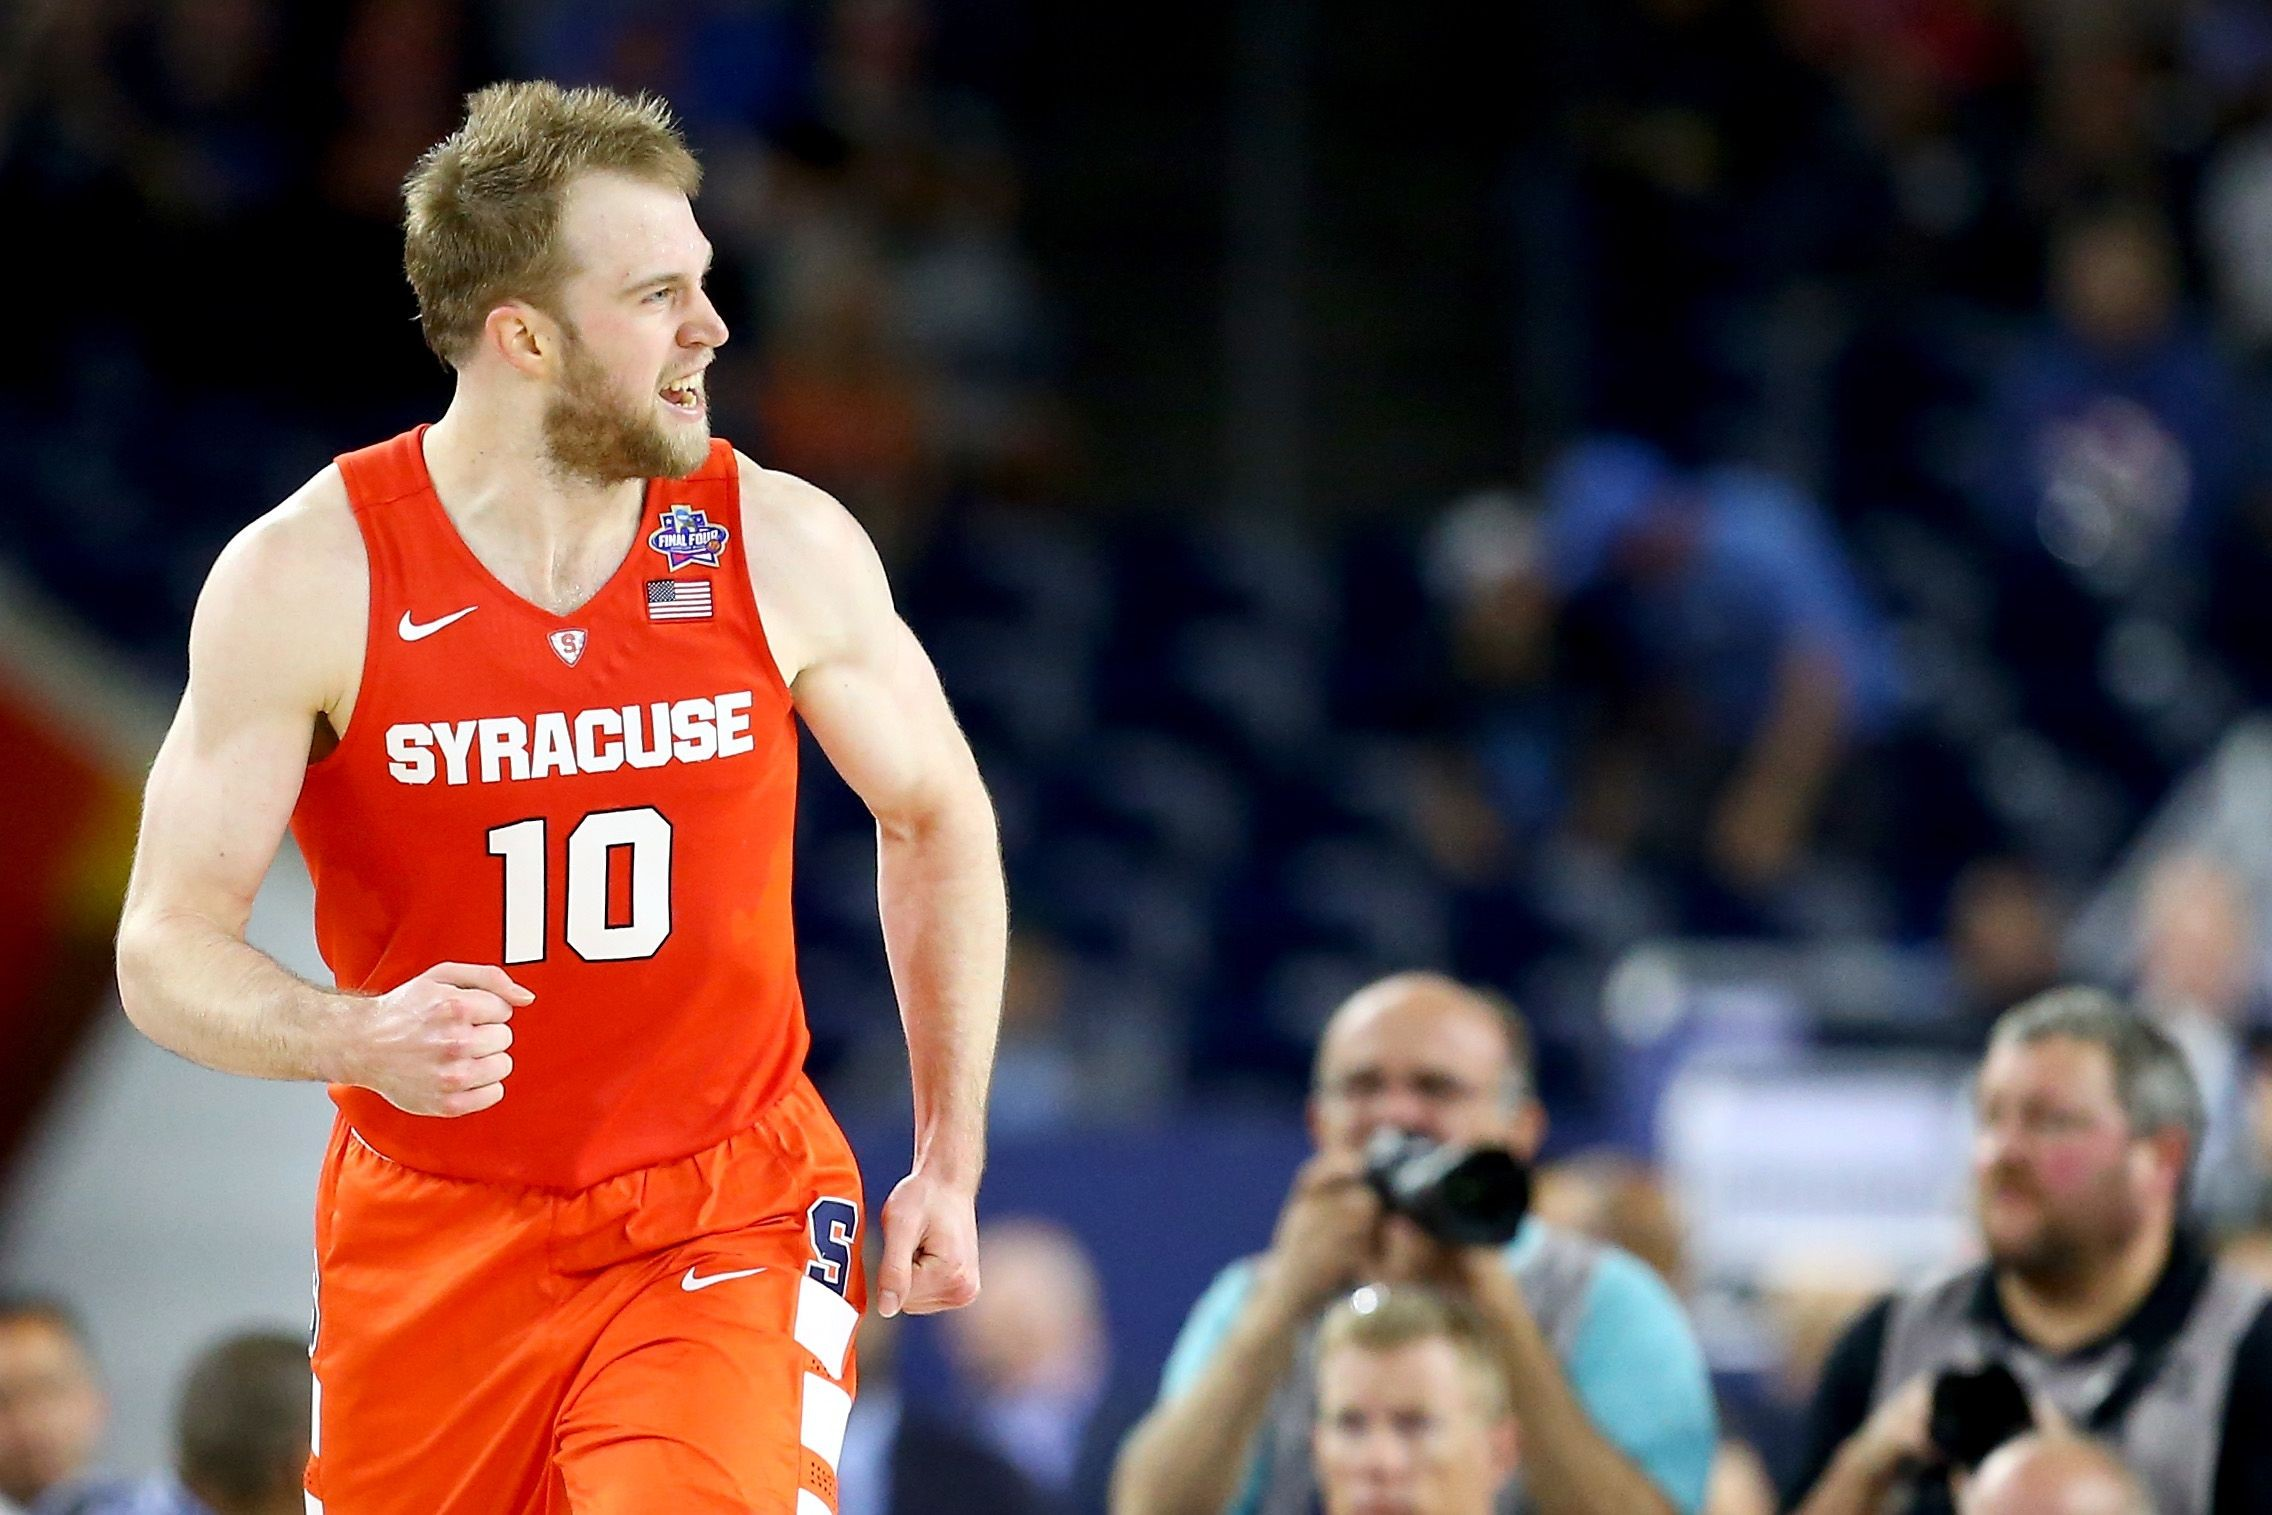 Syracuse Basketball Top 10 3 Point Shooters In Cuse History